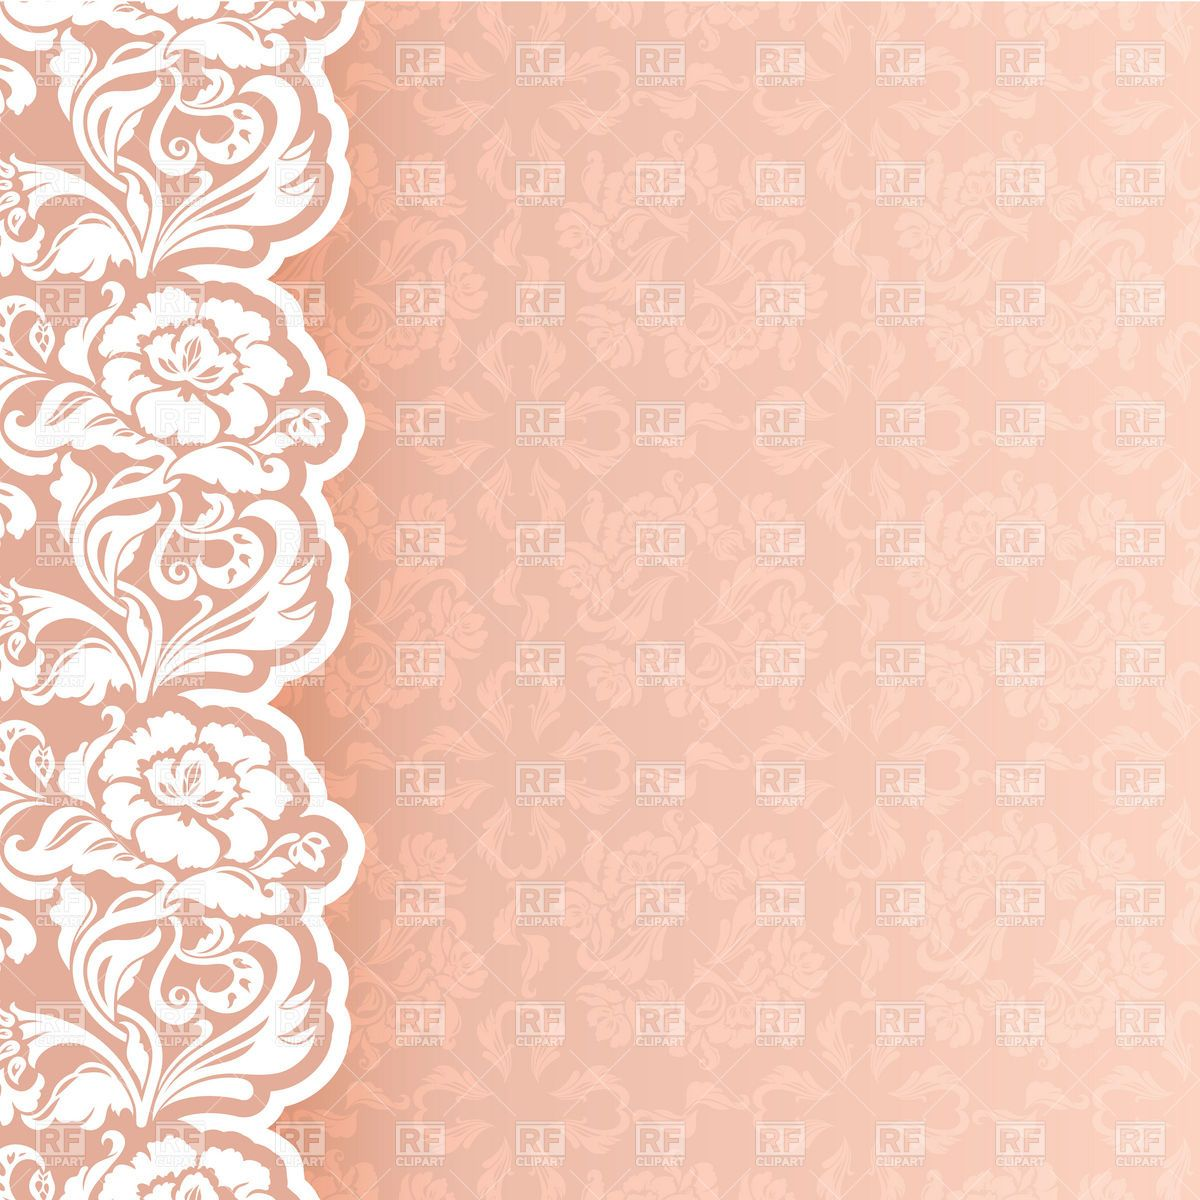 Flower And Lace Border Clip Art Background With Delicate Newborn Or Wedding Invitation